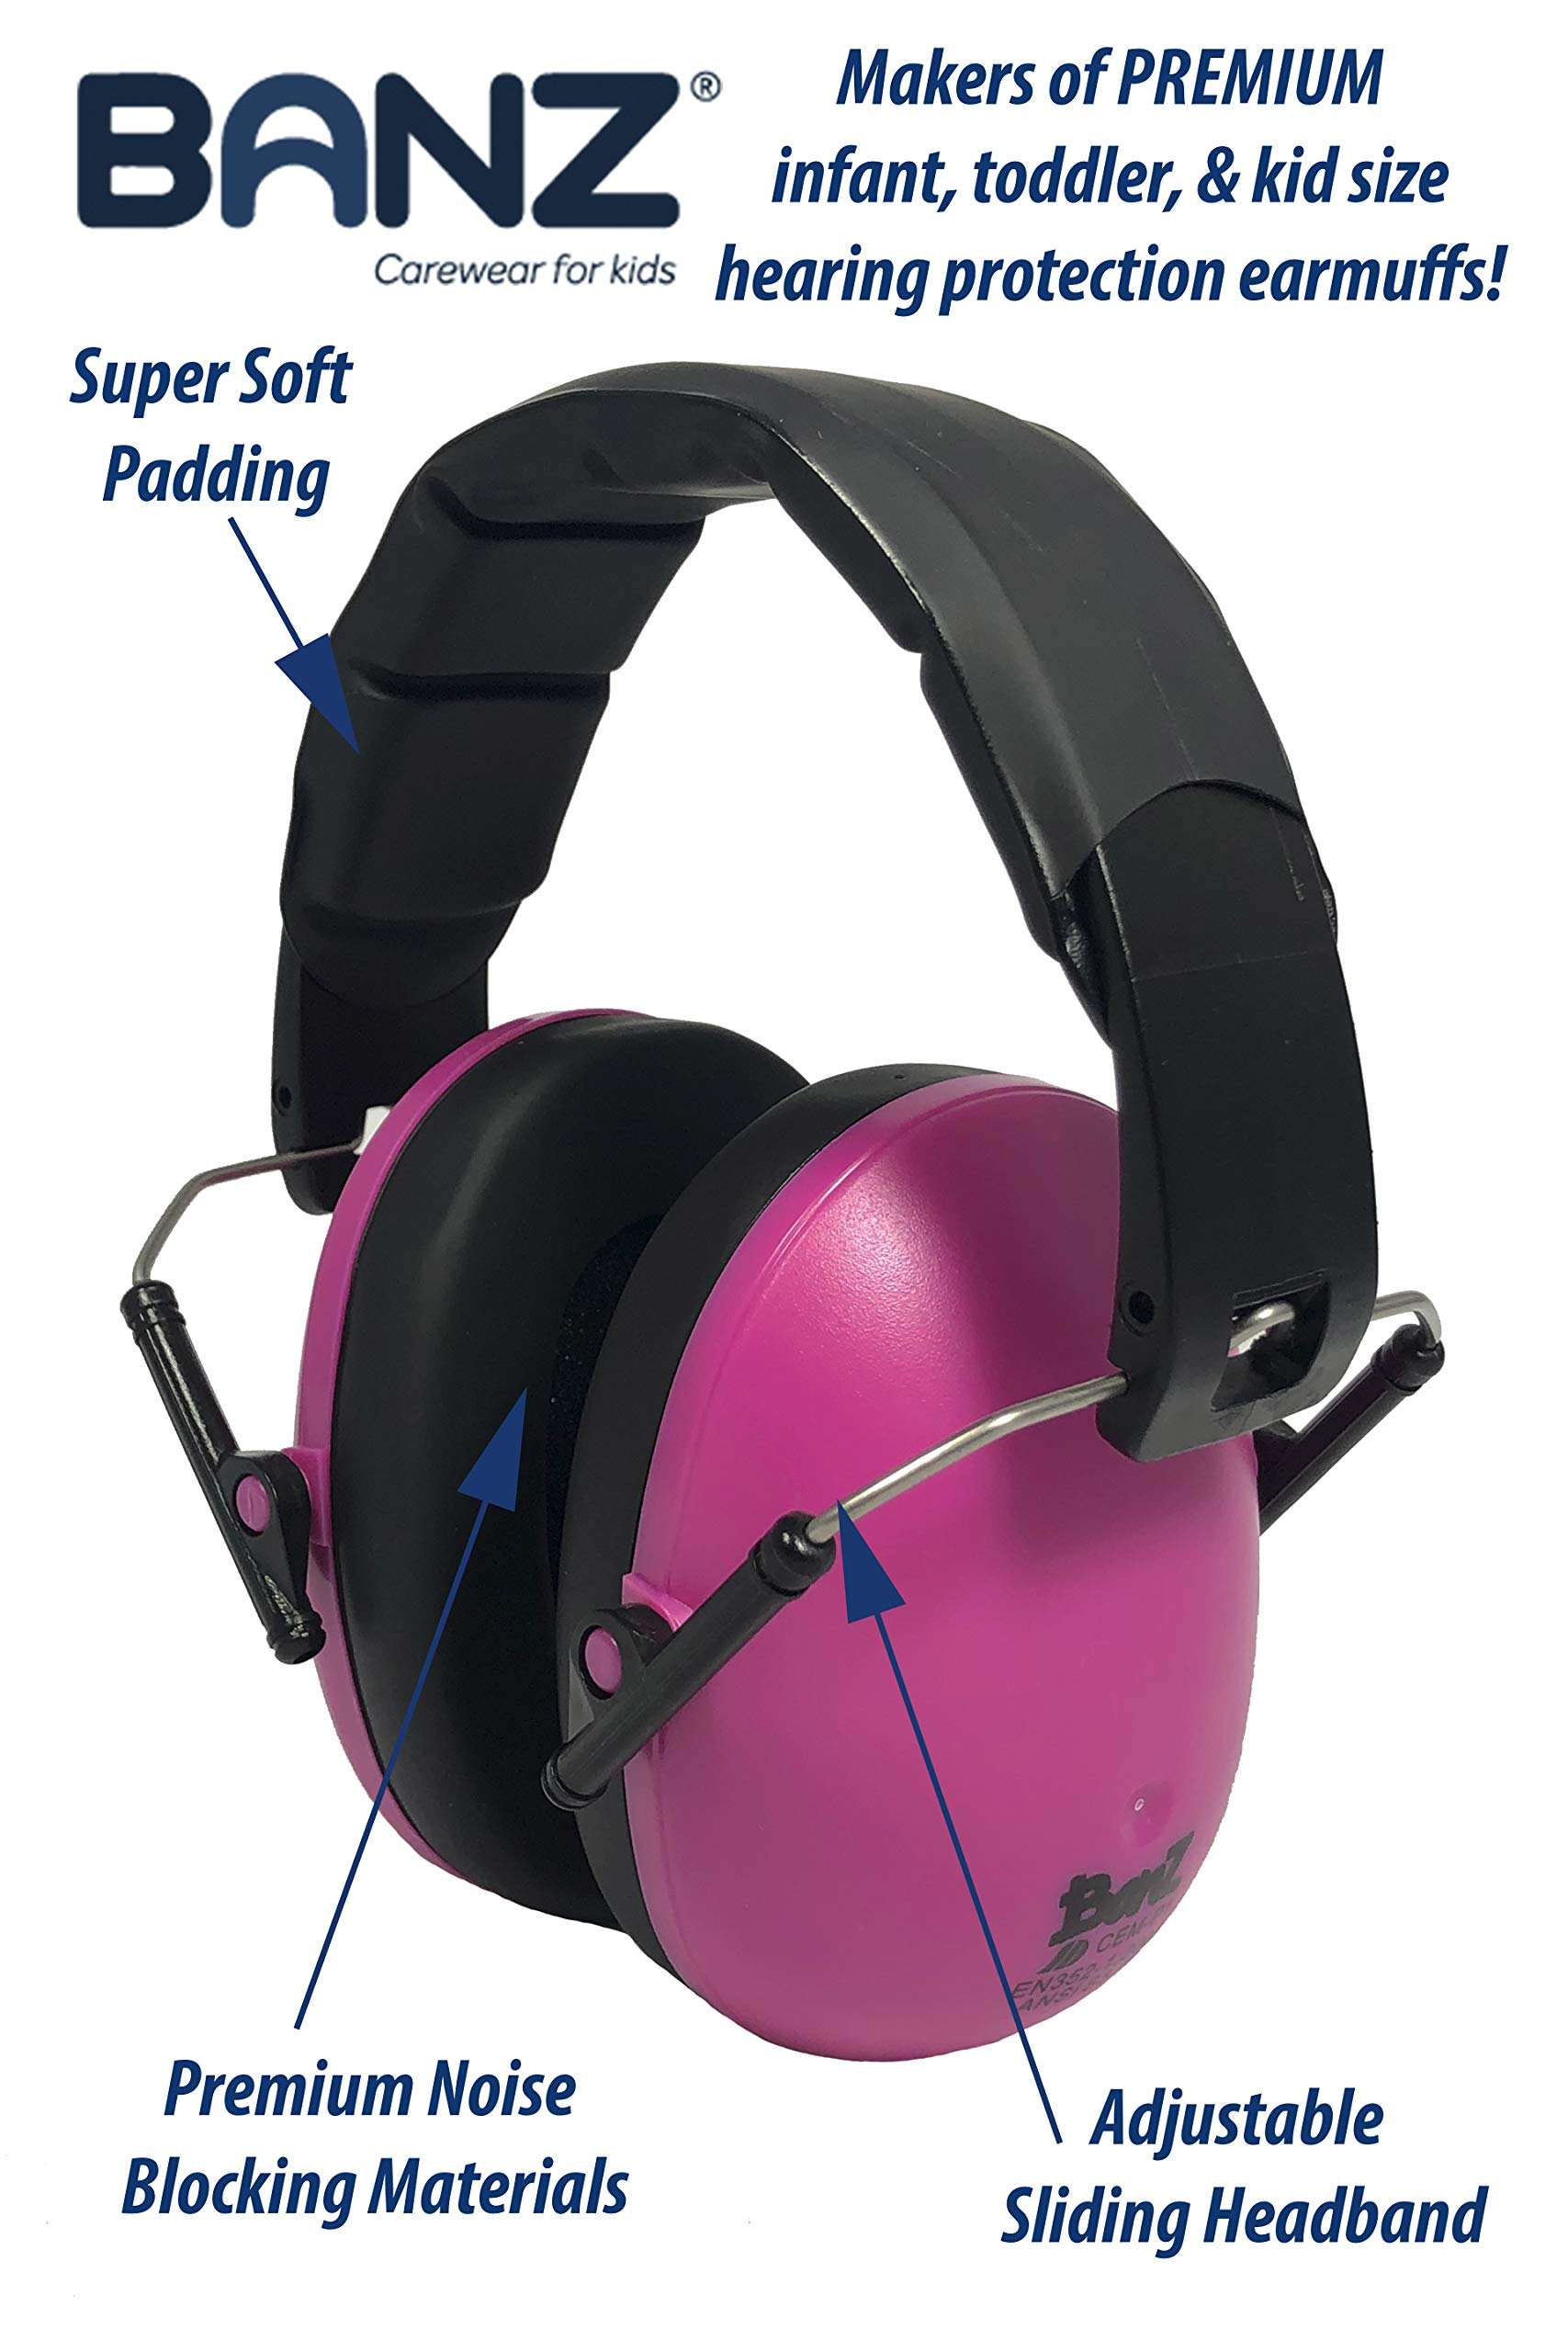 Baby Banz Earmuffs Kids Hearing Protection - Ages 2+ Years - THE BEST EARMUFFS FOR KIDS - Industry Leading Noise Reduction Rating - Soft & Comfortable - Kids Ear Protection, Magenta